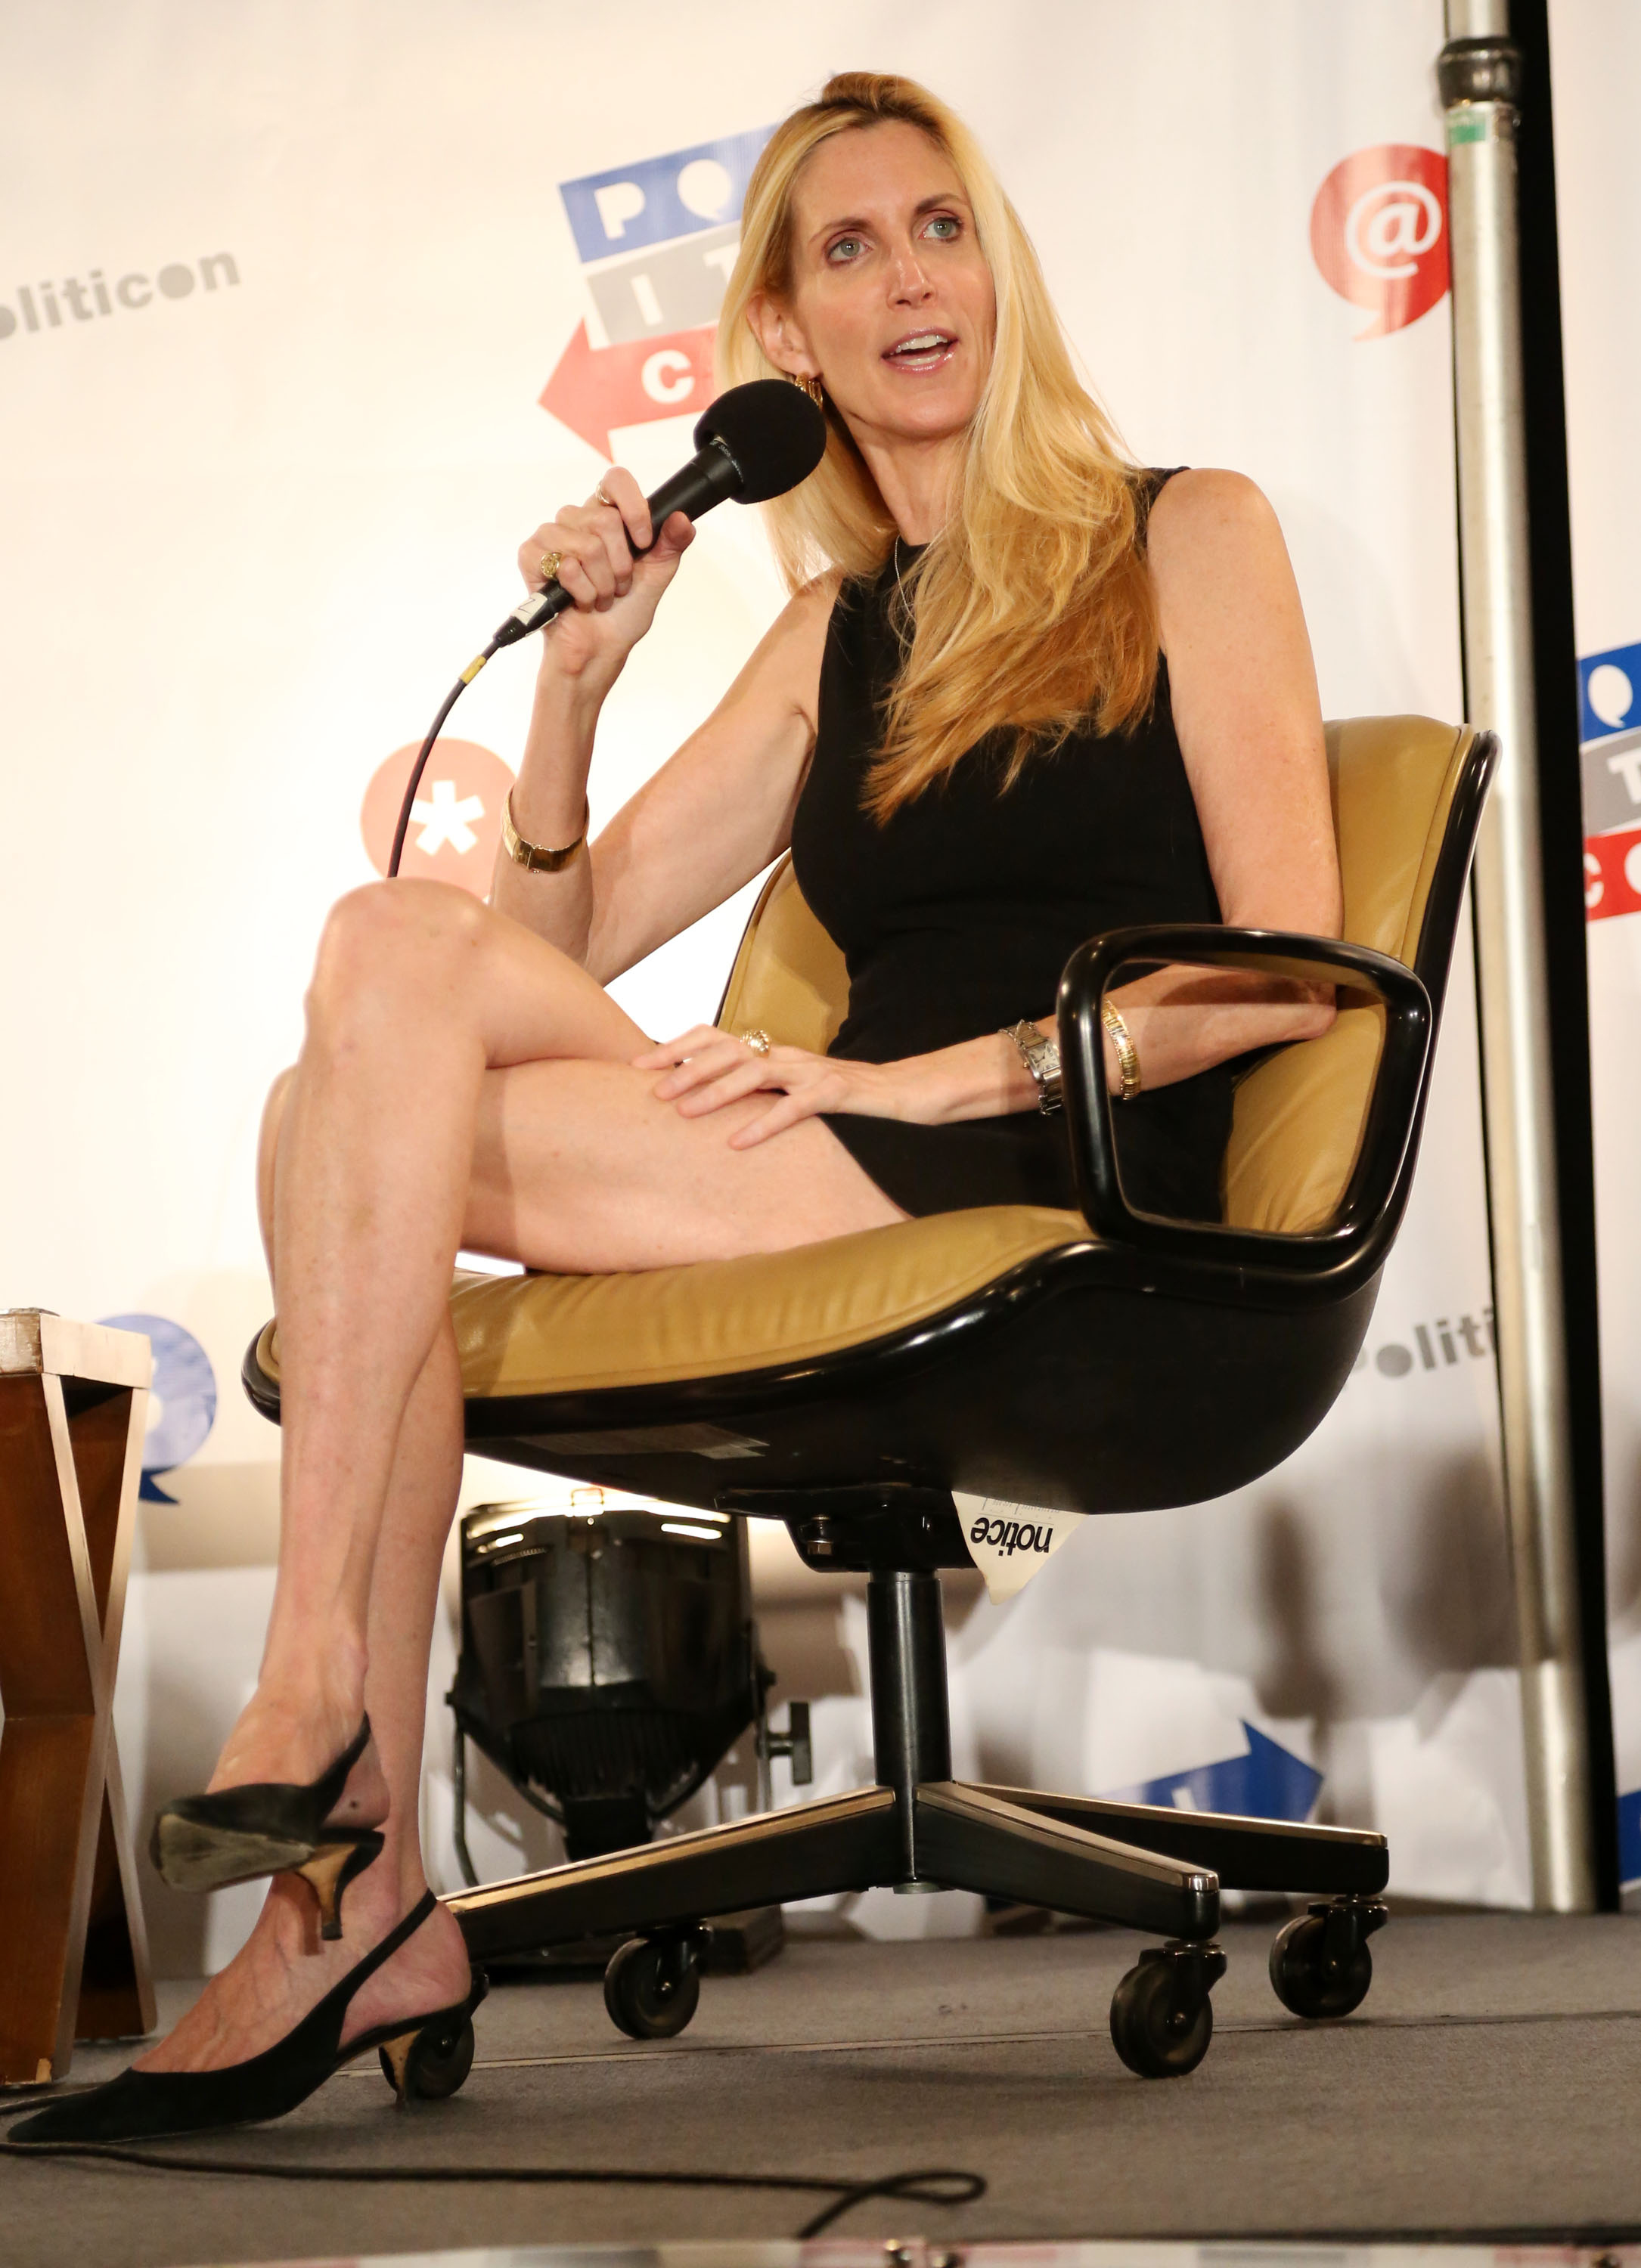 ann coulter photo long legs